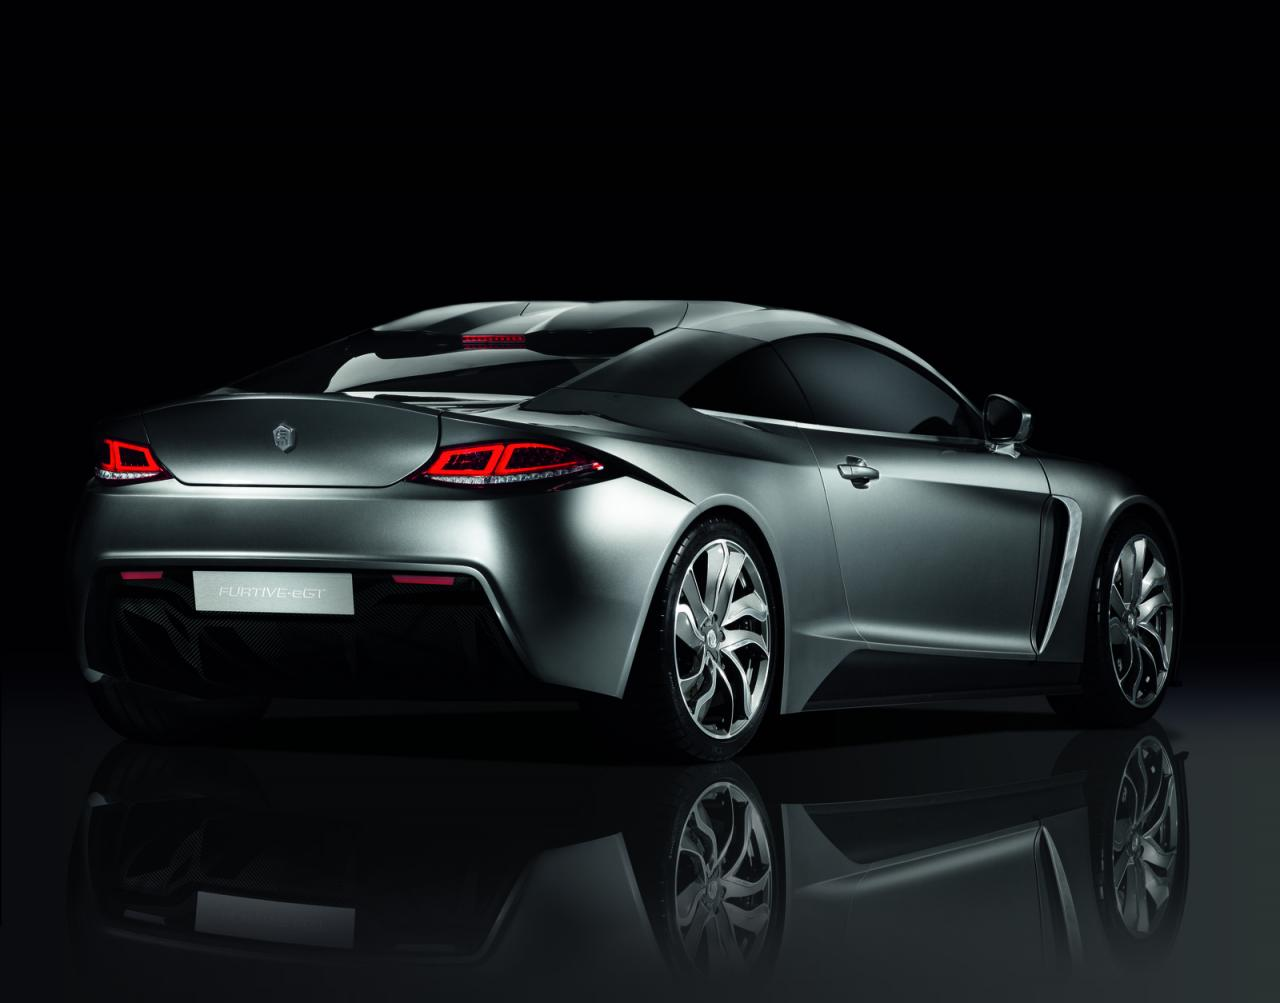 2013 Exagon Furtive eGT 2 Exagon Motors unveils the production version of the 2013 Furtive eGT